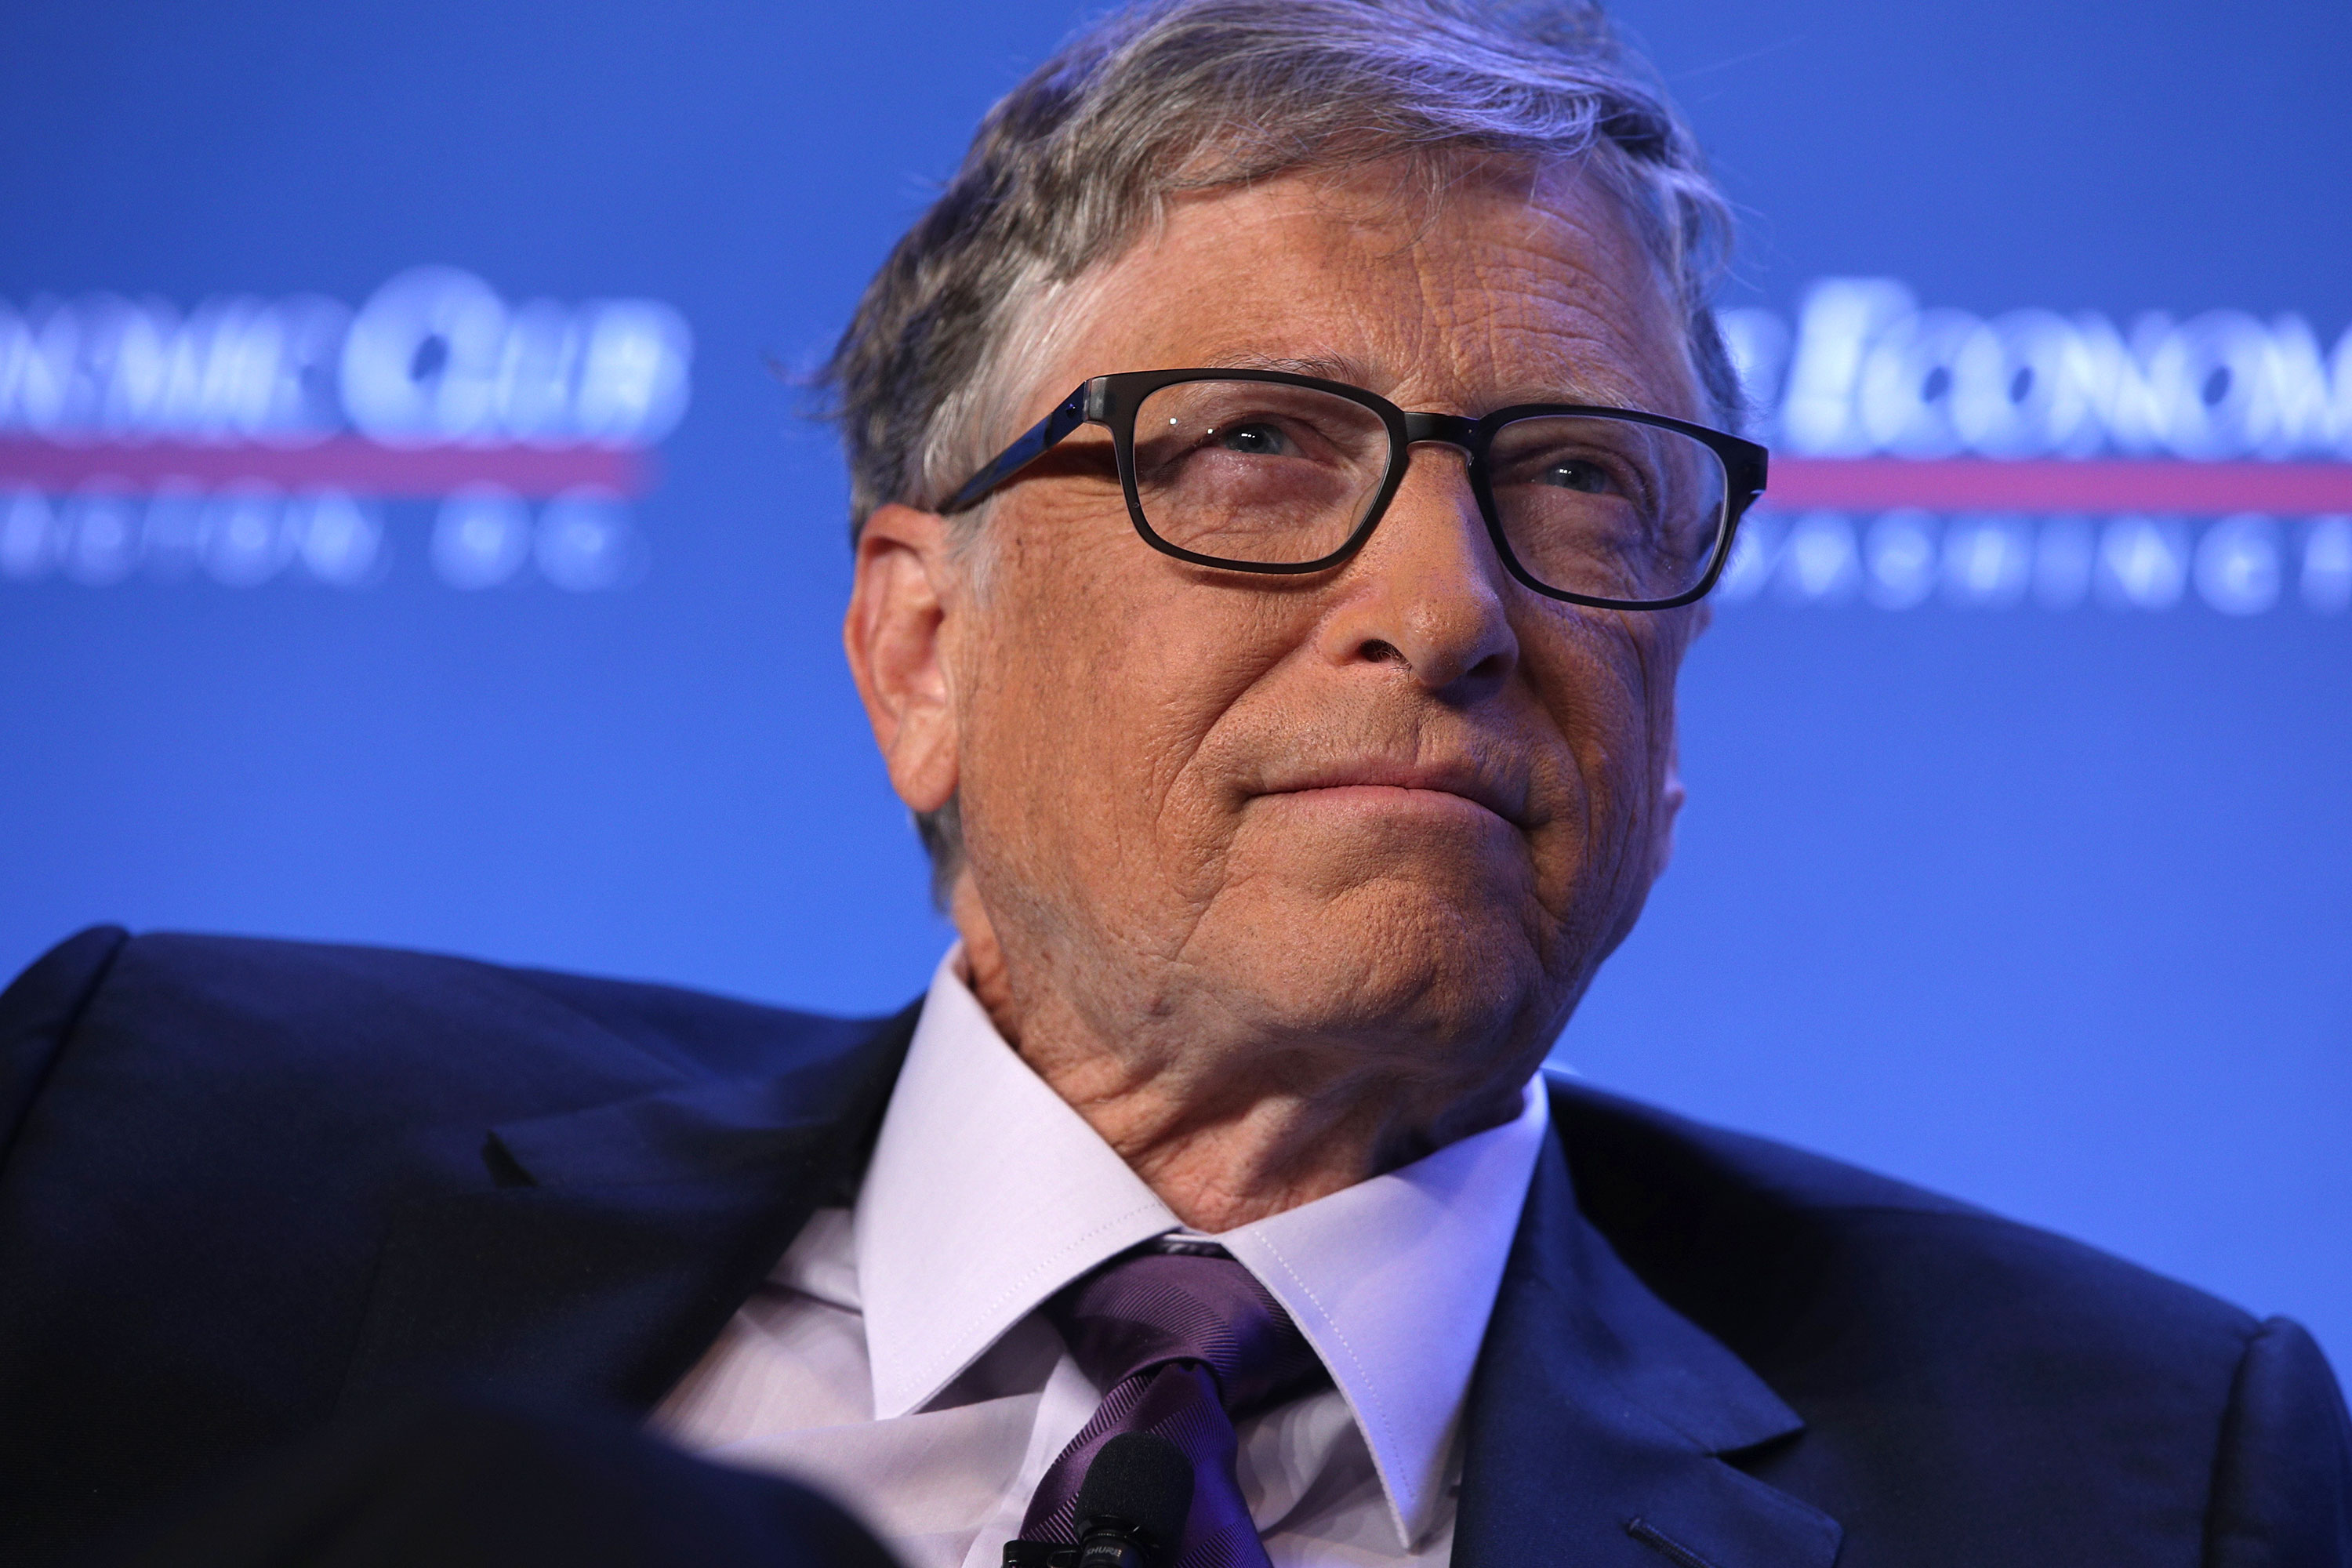 Bill Gates participates in a discussion at the Economic Club of Washington on June 24, 2019 in Washington.